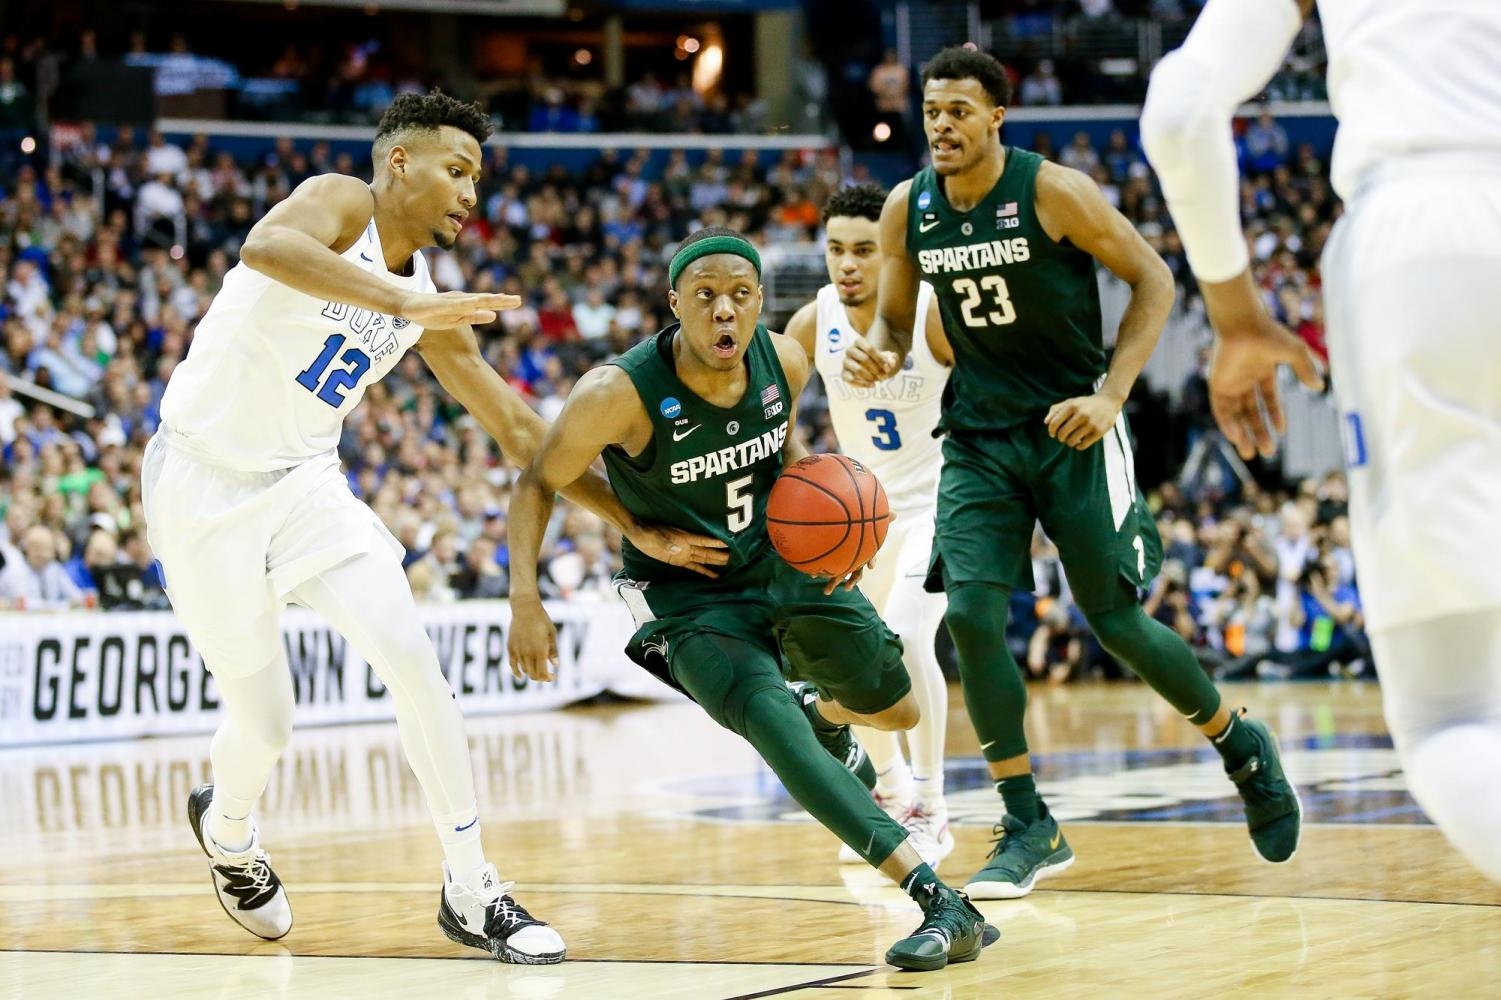 Spartans can't complete comeback, continue road struggles with loss to Indiana